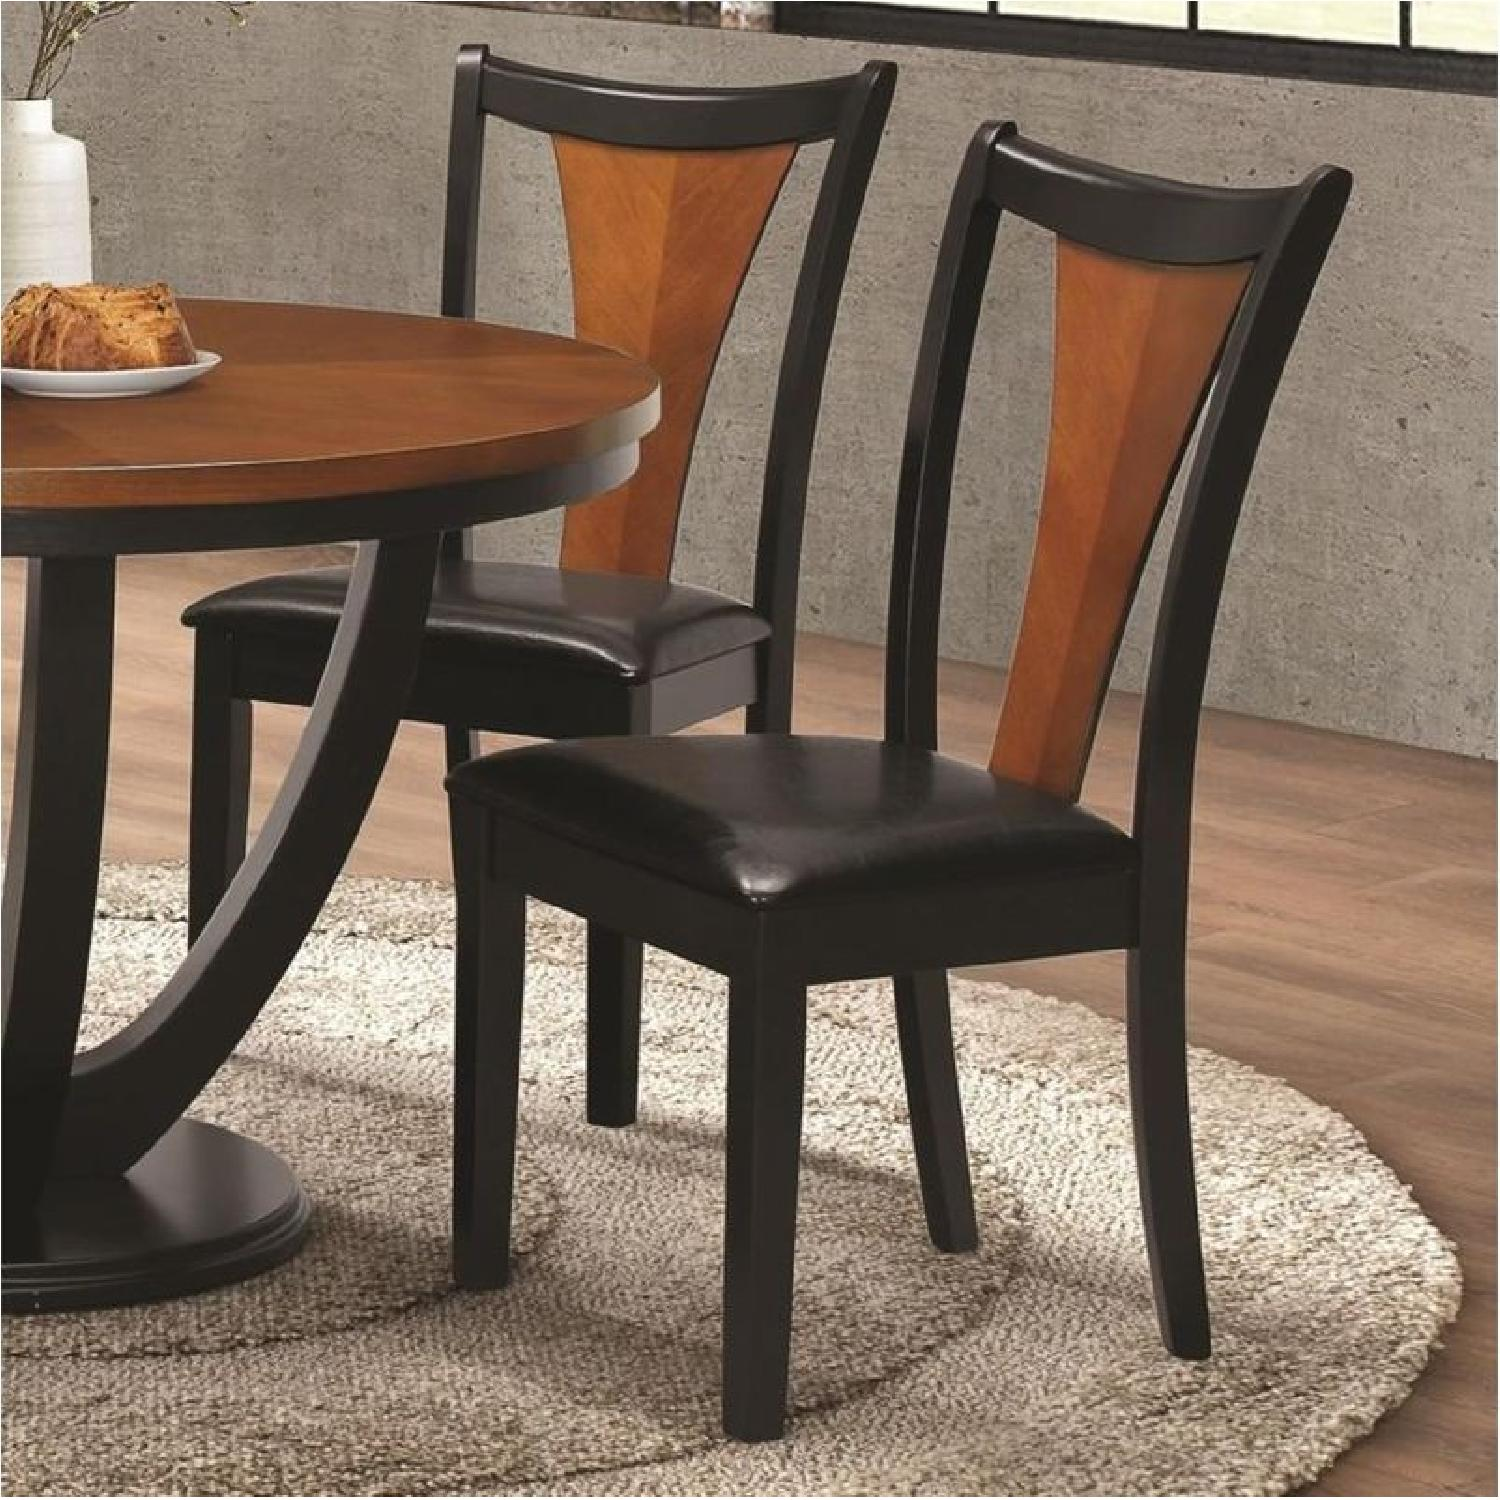 Dining Chair in 2-Tone Amber/Black Finish - image-2